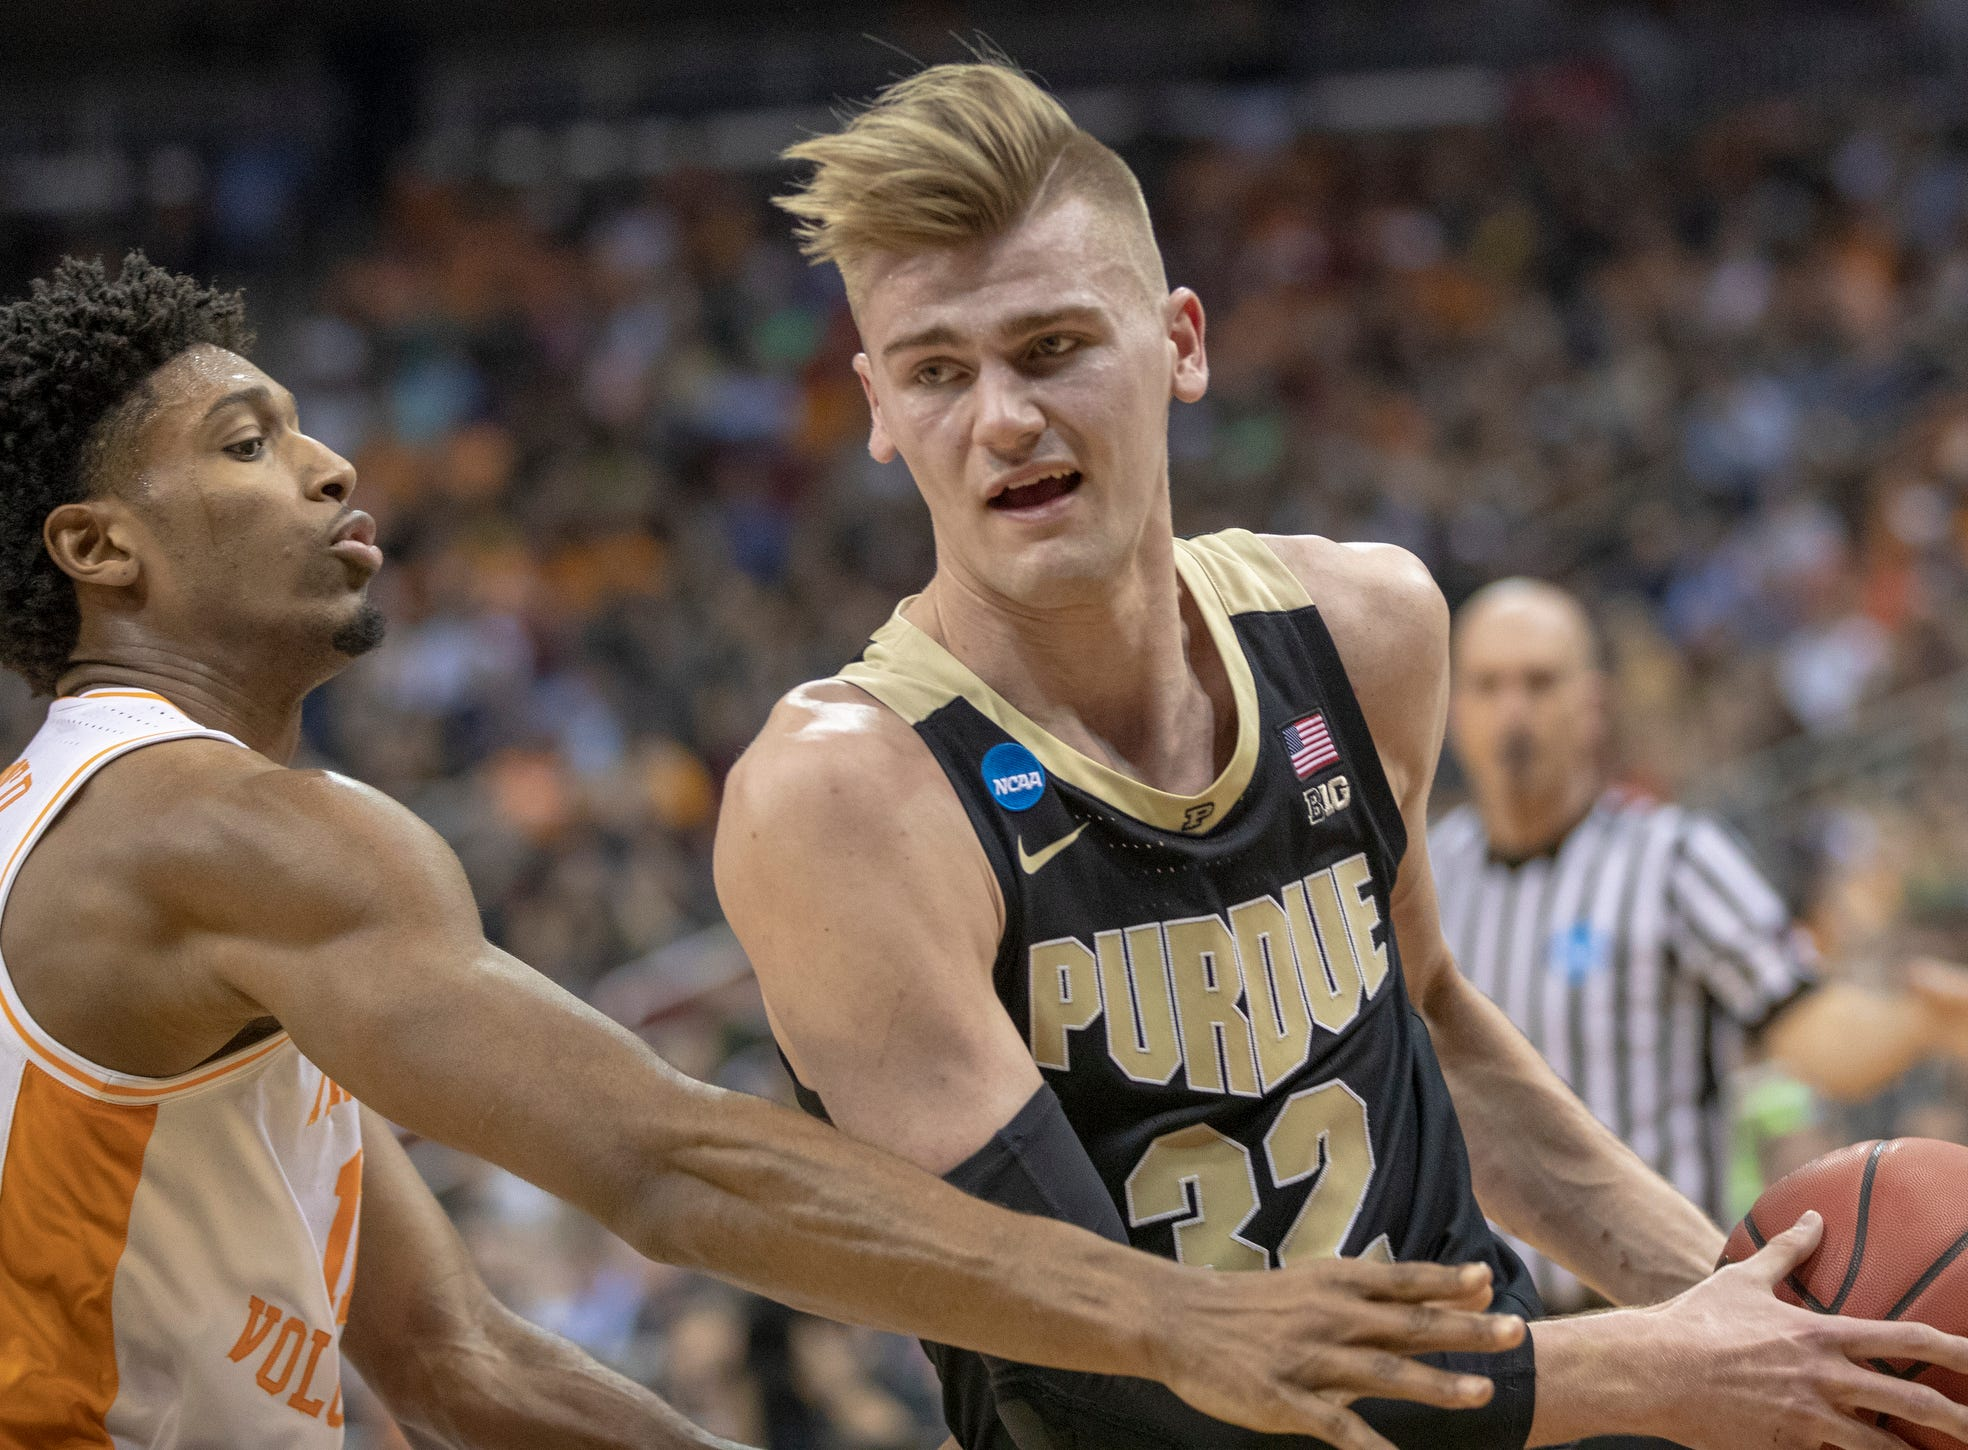 Kyle Alexander of the Tennessee Volunteers defends Matt Haarms of the Purdue Boilermakers, NCAA Division 1 Men's Basketball 'Sweet Sixteen' game, KFC Yum Center, Louisville, Thursday, March 28, 2019. Purdue beat Tennessee 99-94.